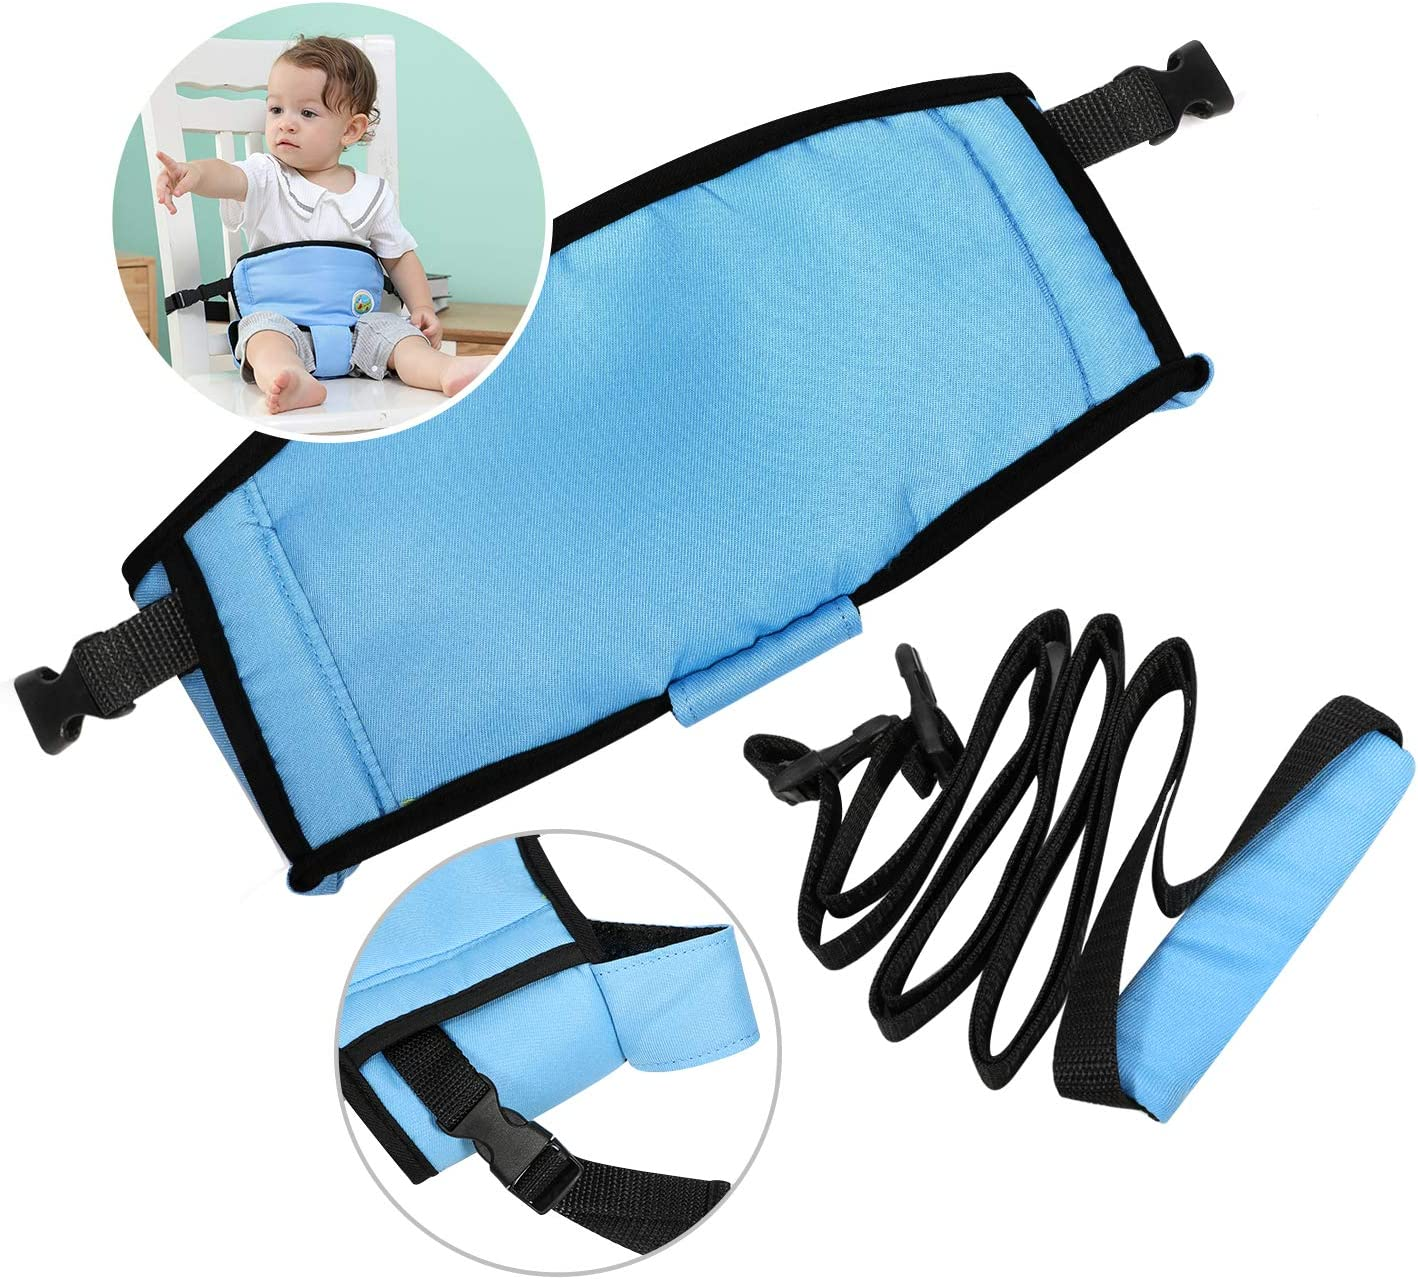 Travel High Chair Belt for Infant Toddler with Adjustable Straps HIFOT Baby Chair Belt Easy Seat Portable High Chair Safety Harness